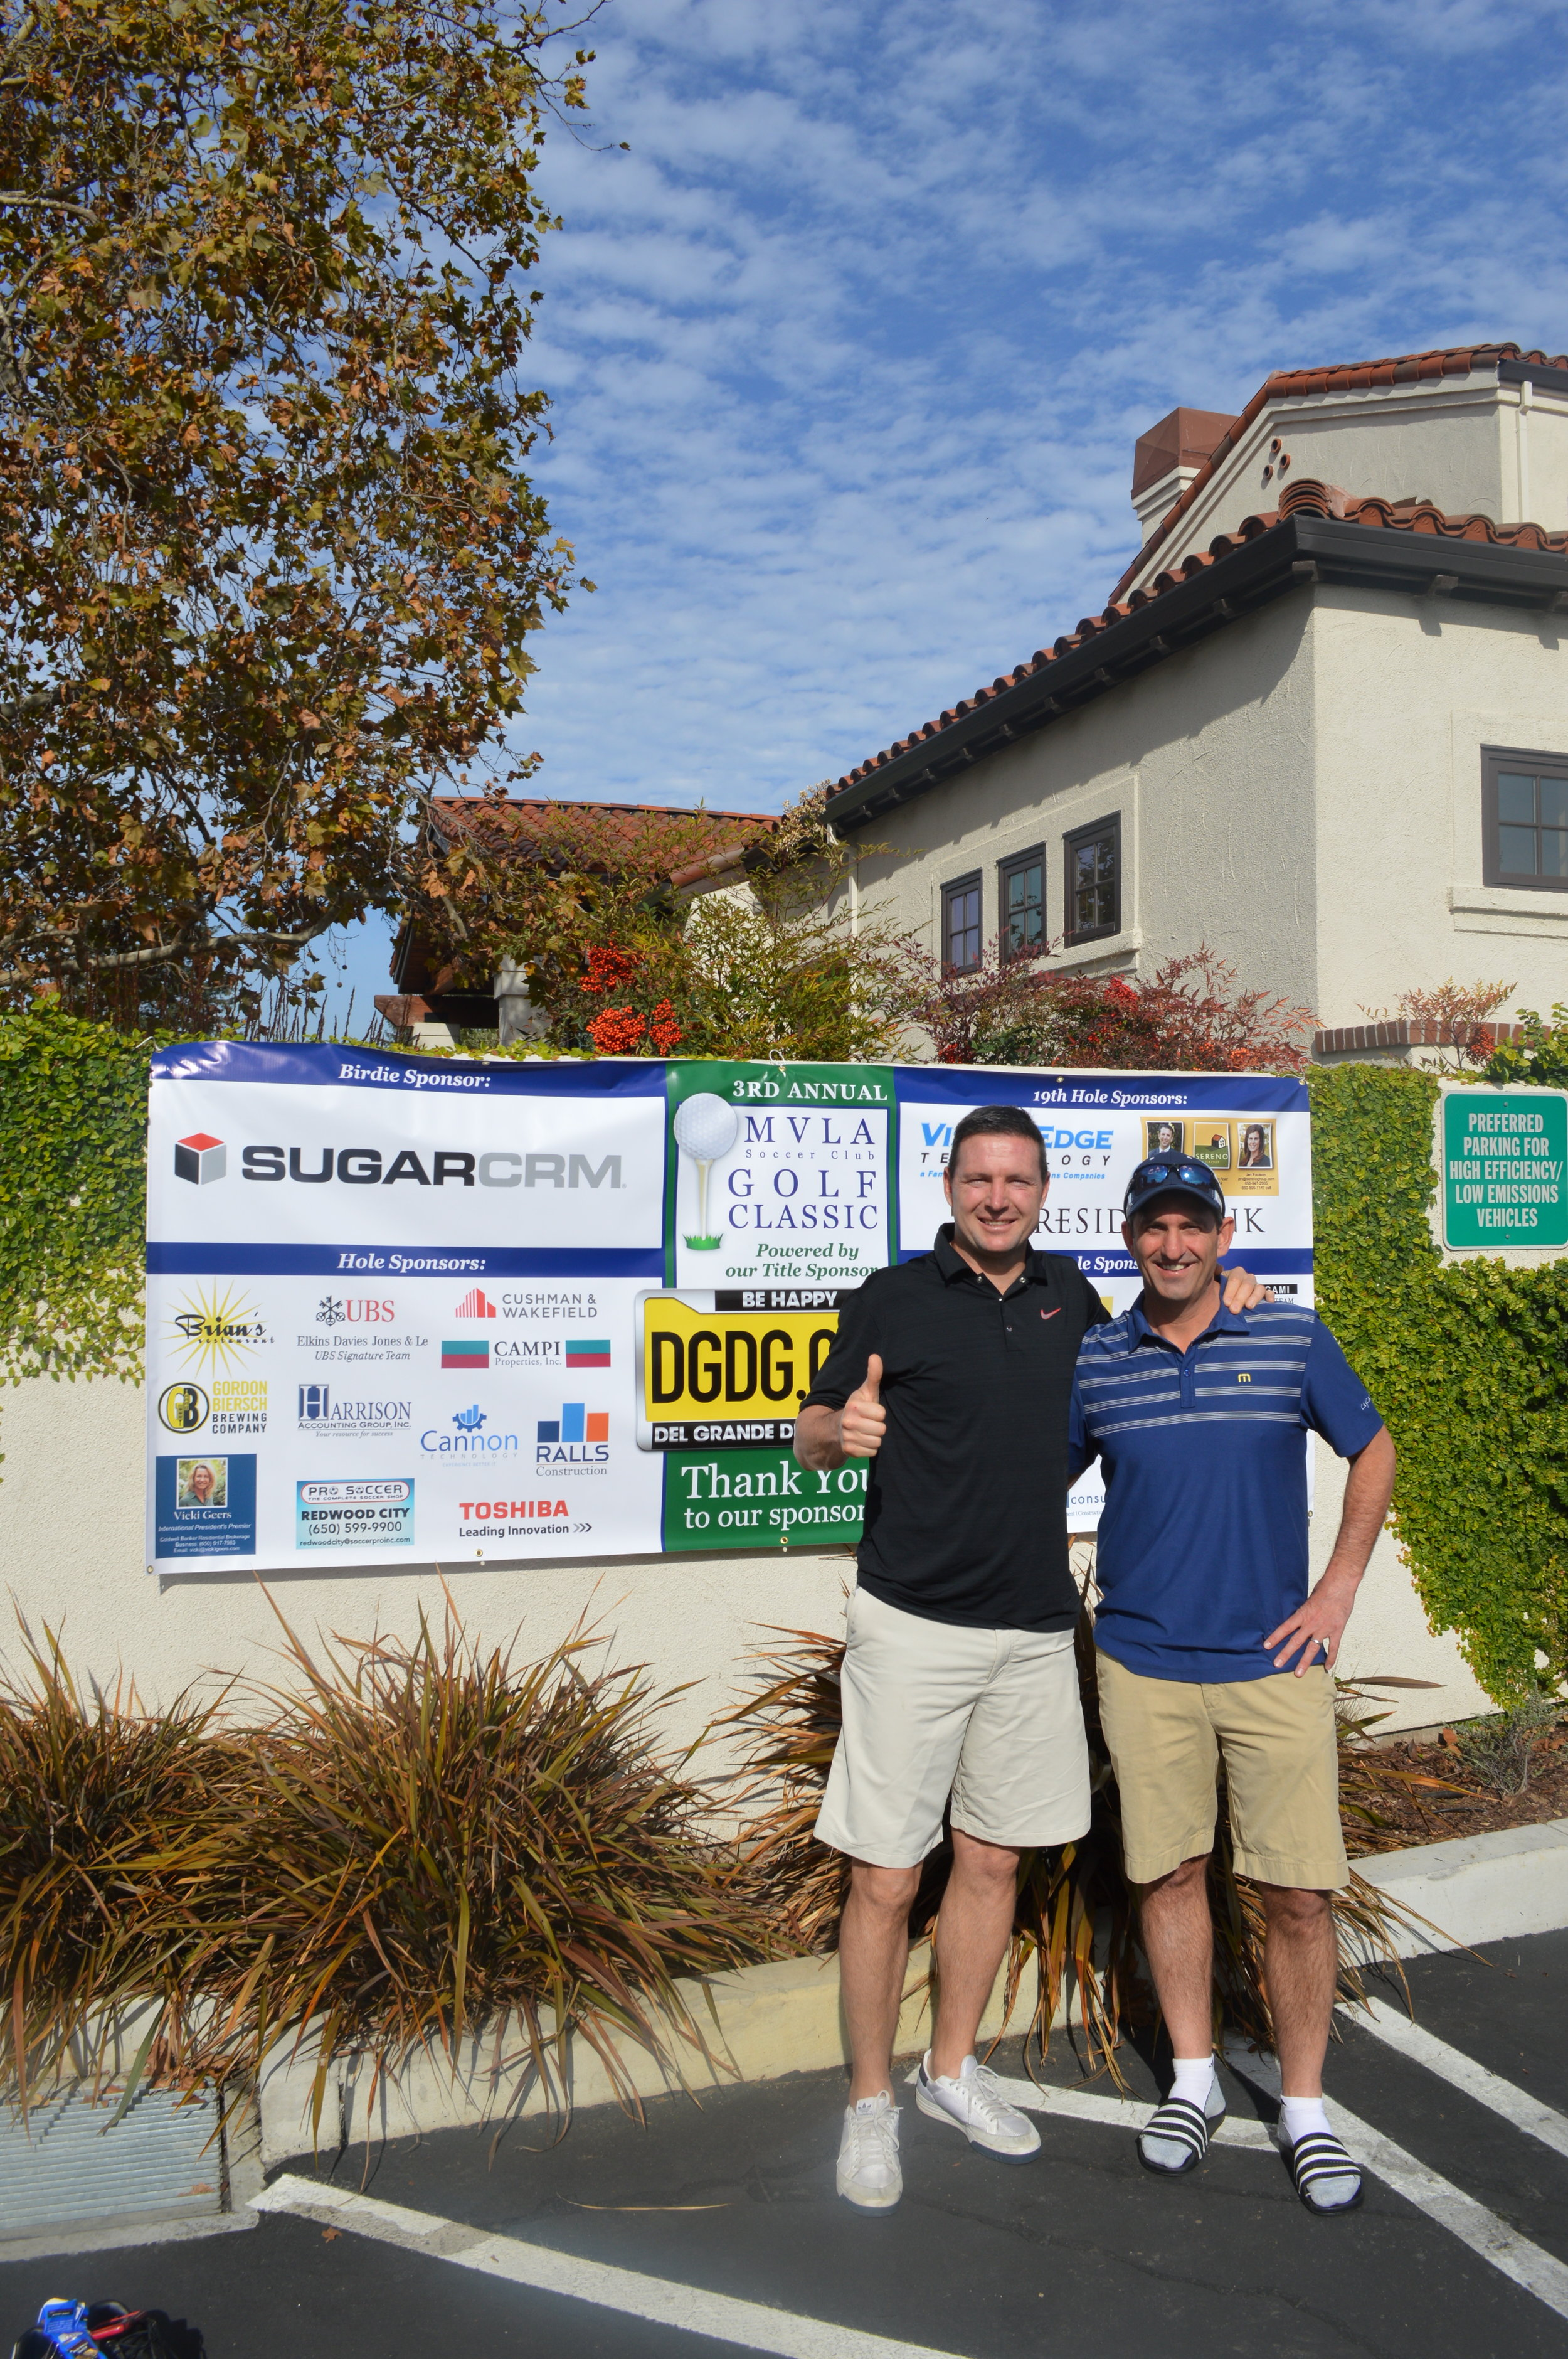 MVLA Director Joe Cannon and Will Steadman of DGDG